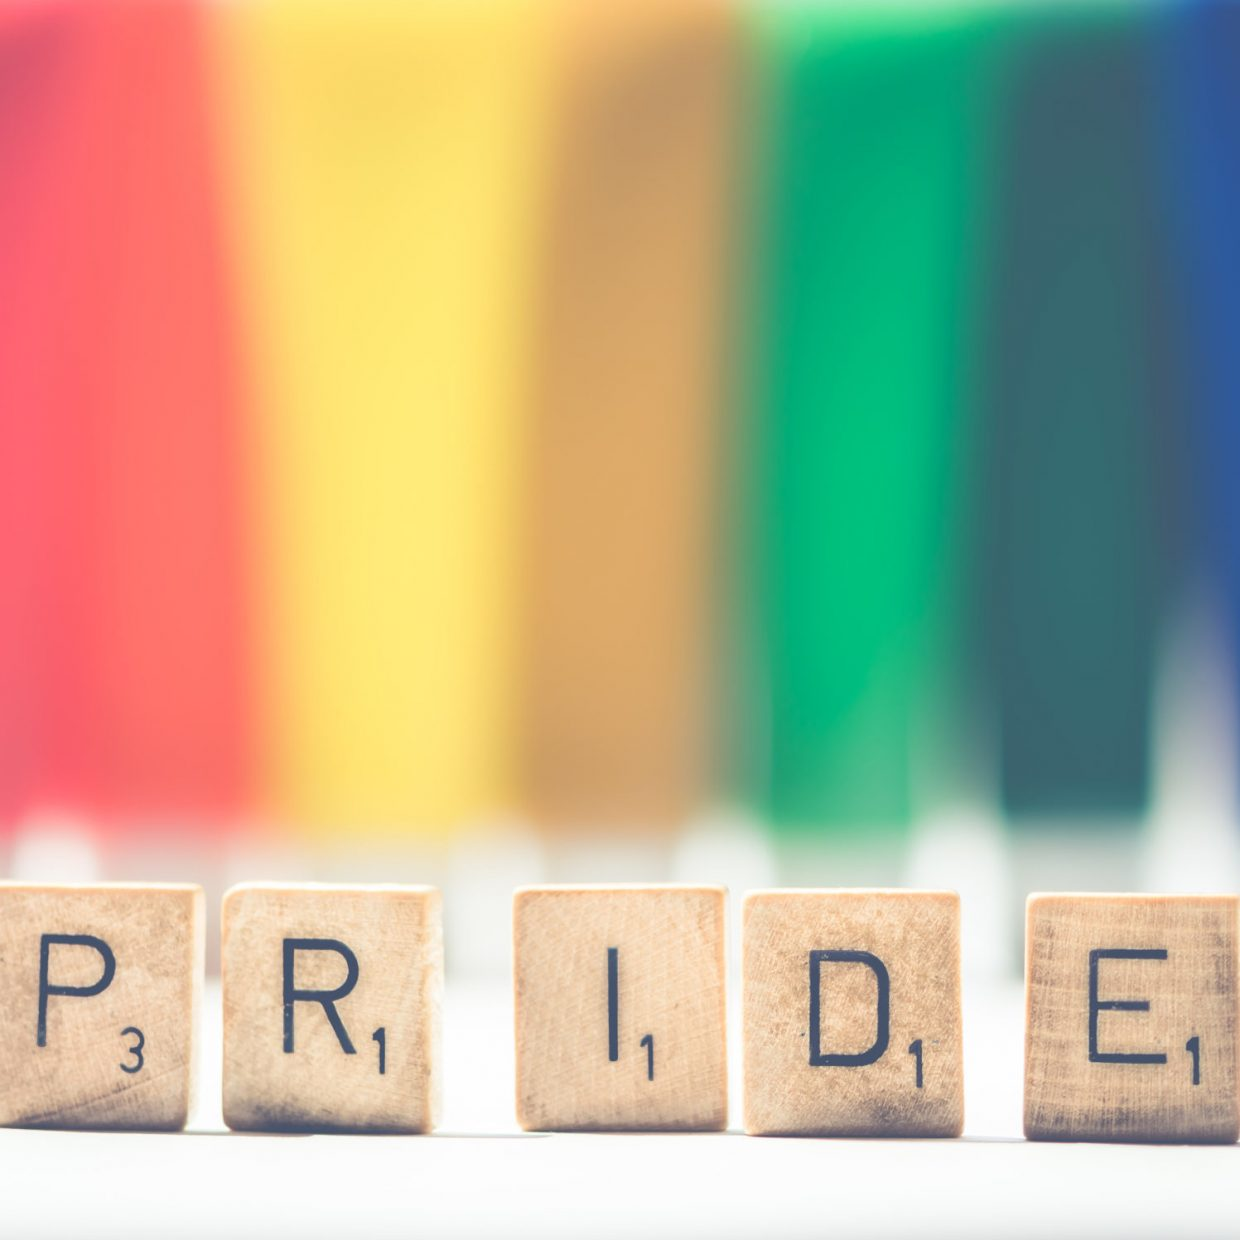 Canva-Selective-Focus-Photography-of-Scrabble-Pride-on-White-and-Multicolored-Background-scaled-e1574279091734